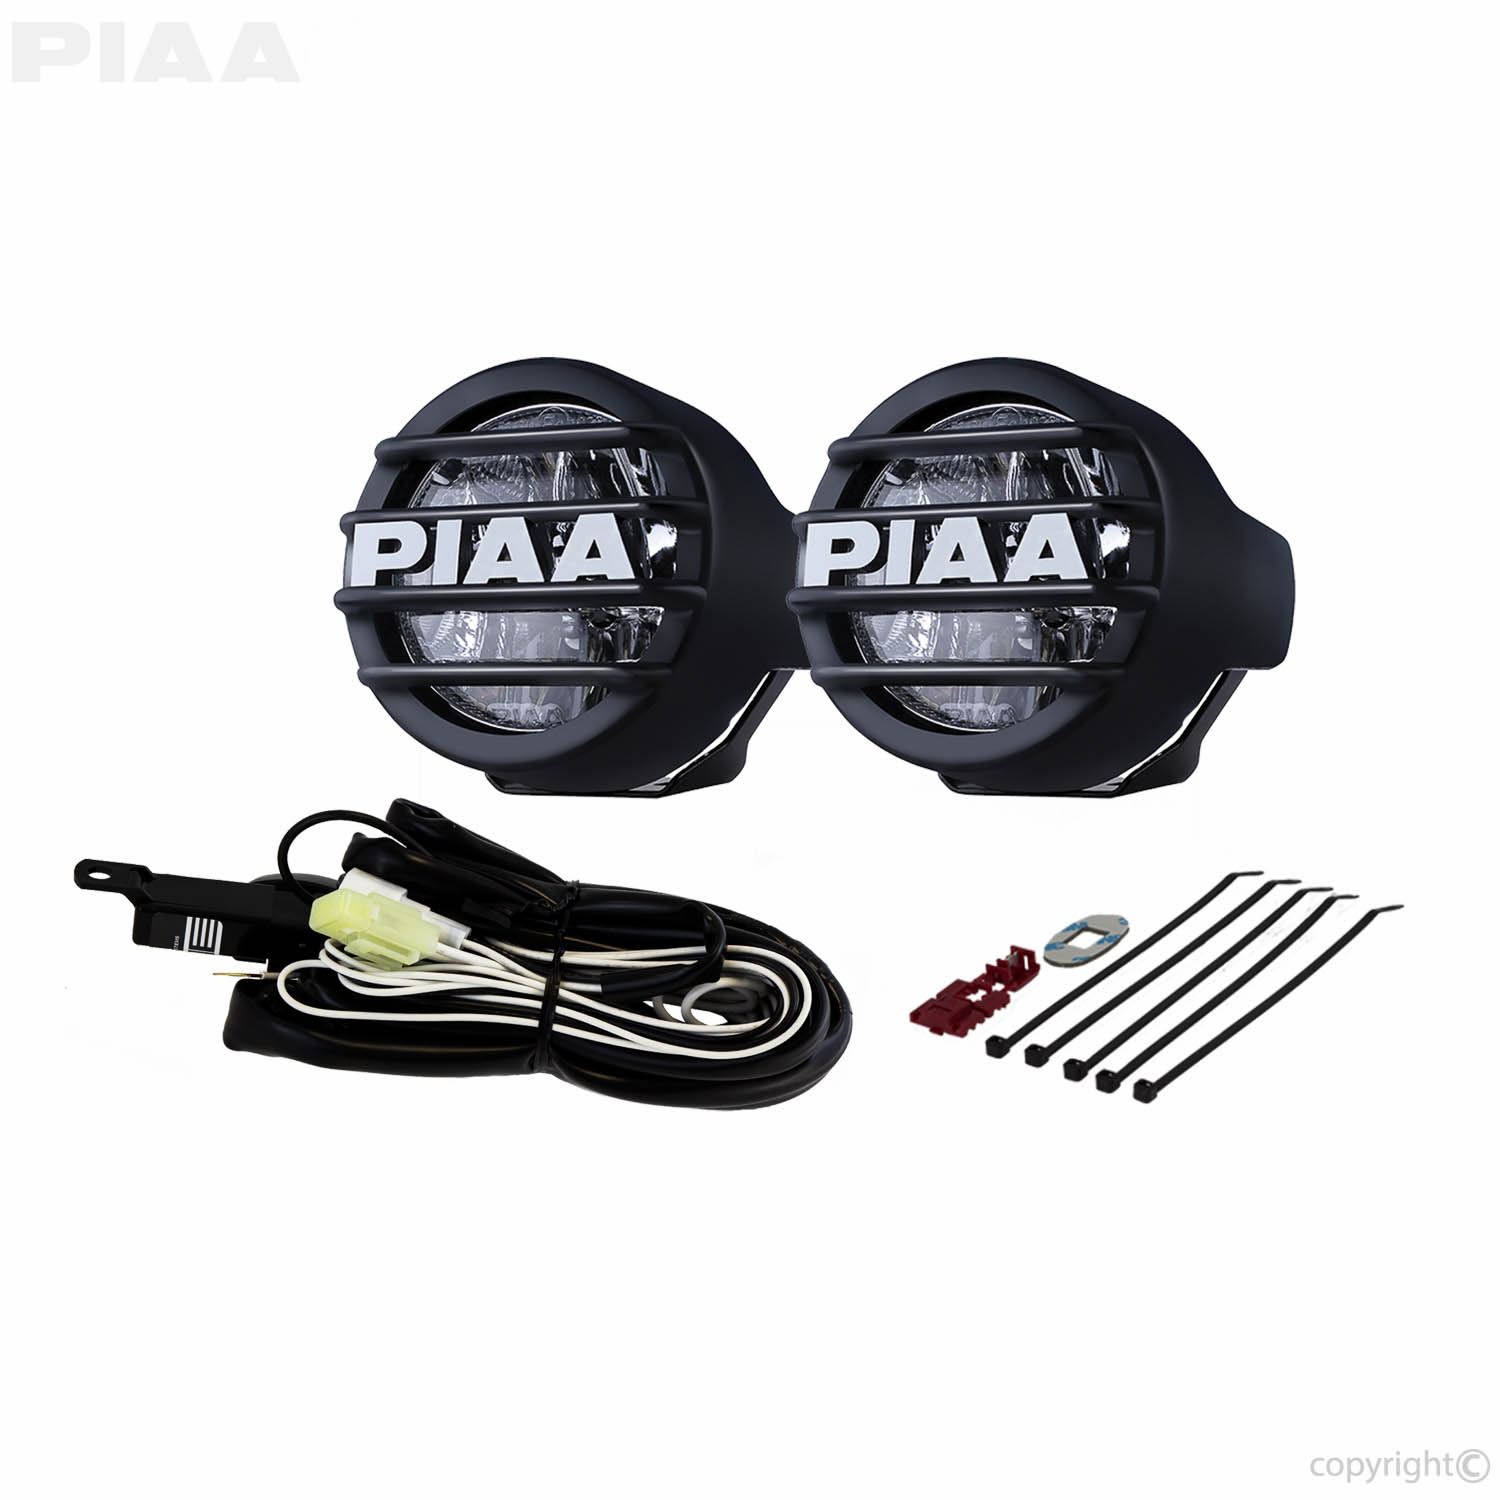 piaa 73530 530 contents hr?bw=1000&w=1000&bh=1000&h=1000 piaa lp530 3 5\